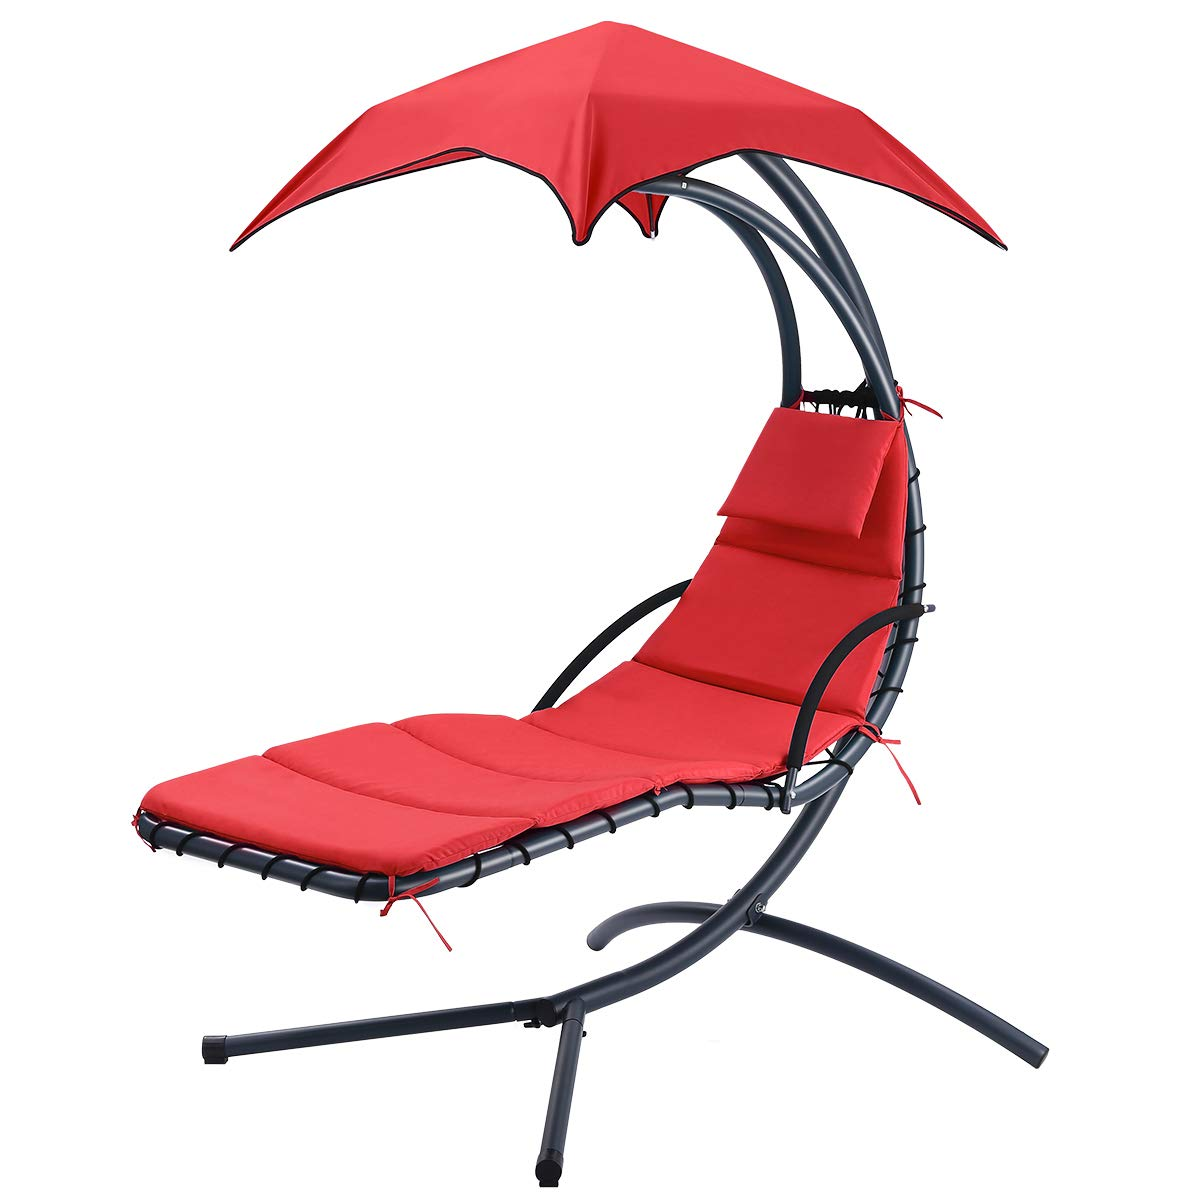 Finether Hammock Chair 275 lbs Load Outdoor/Indoor Hanging Chaise Lounge Chair Garden Patio Hanging Swing Chair with Arc Stand, Canopy and Cushion (Red)